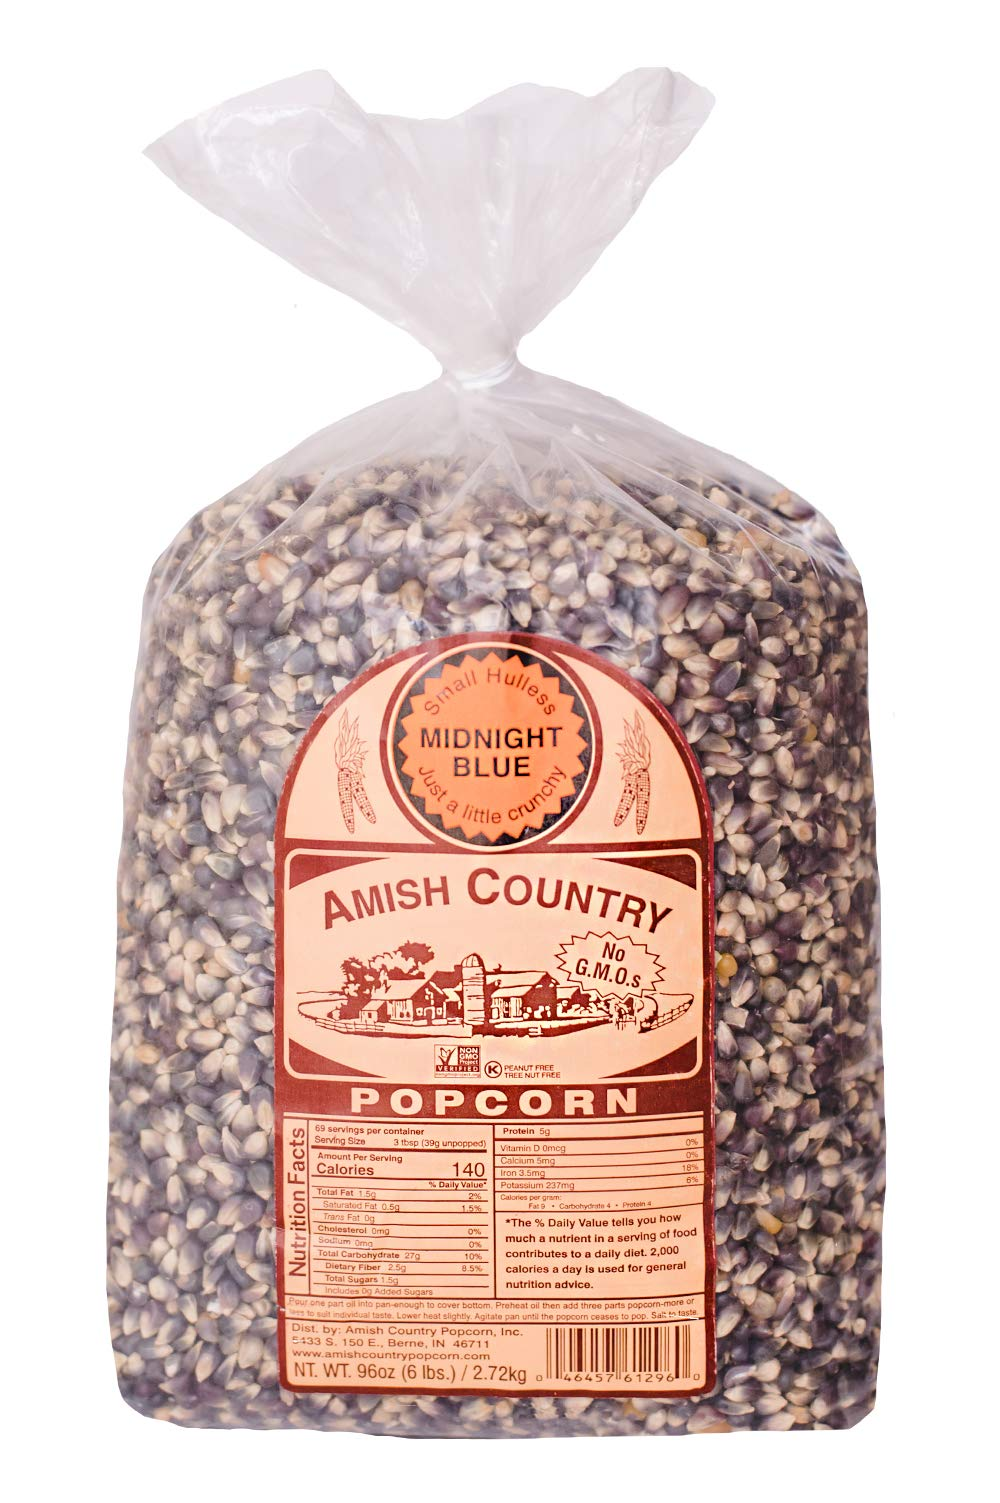 Amish Country Popcorn - Midnight Blue Kernels (6 Pound Bag) - Old Fashioned, Non GMO, and Gluten Free- with Recipe Guide by Amish Country Popcorn